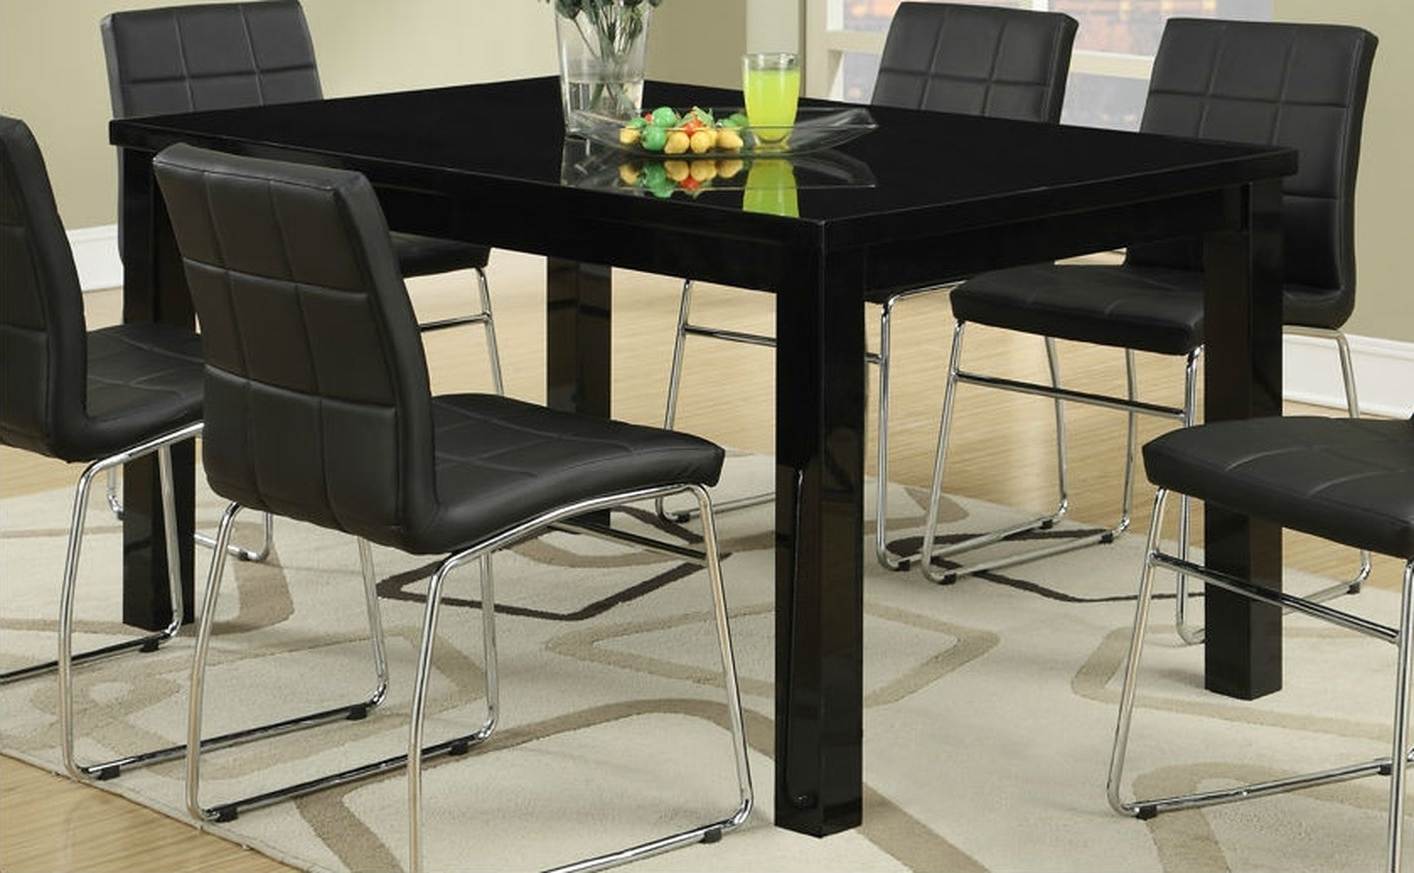 Preferred Black Wood Dining Table – Steal A Sofa Furniture Outlet Los Angeles Ca With Regard To Dark Wooden Dining Tables (View 21 of 25)